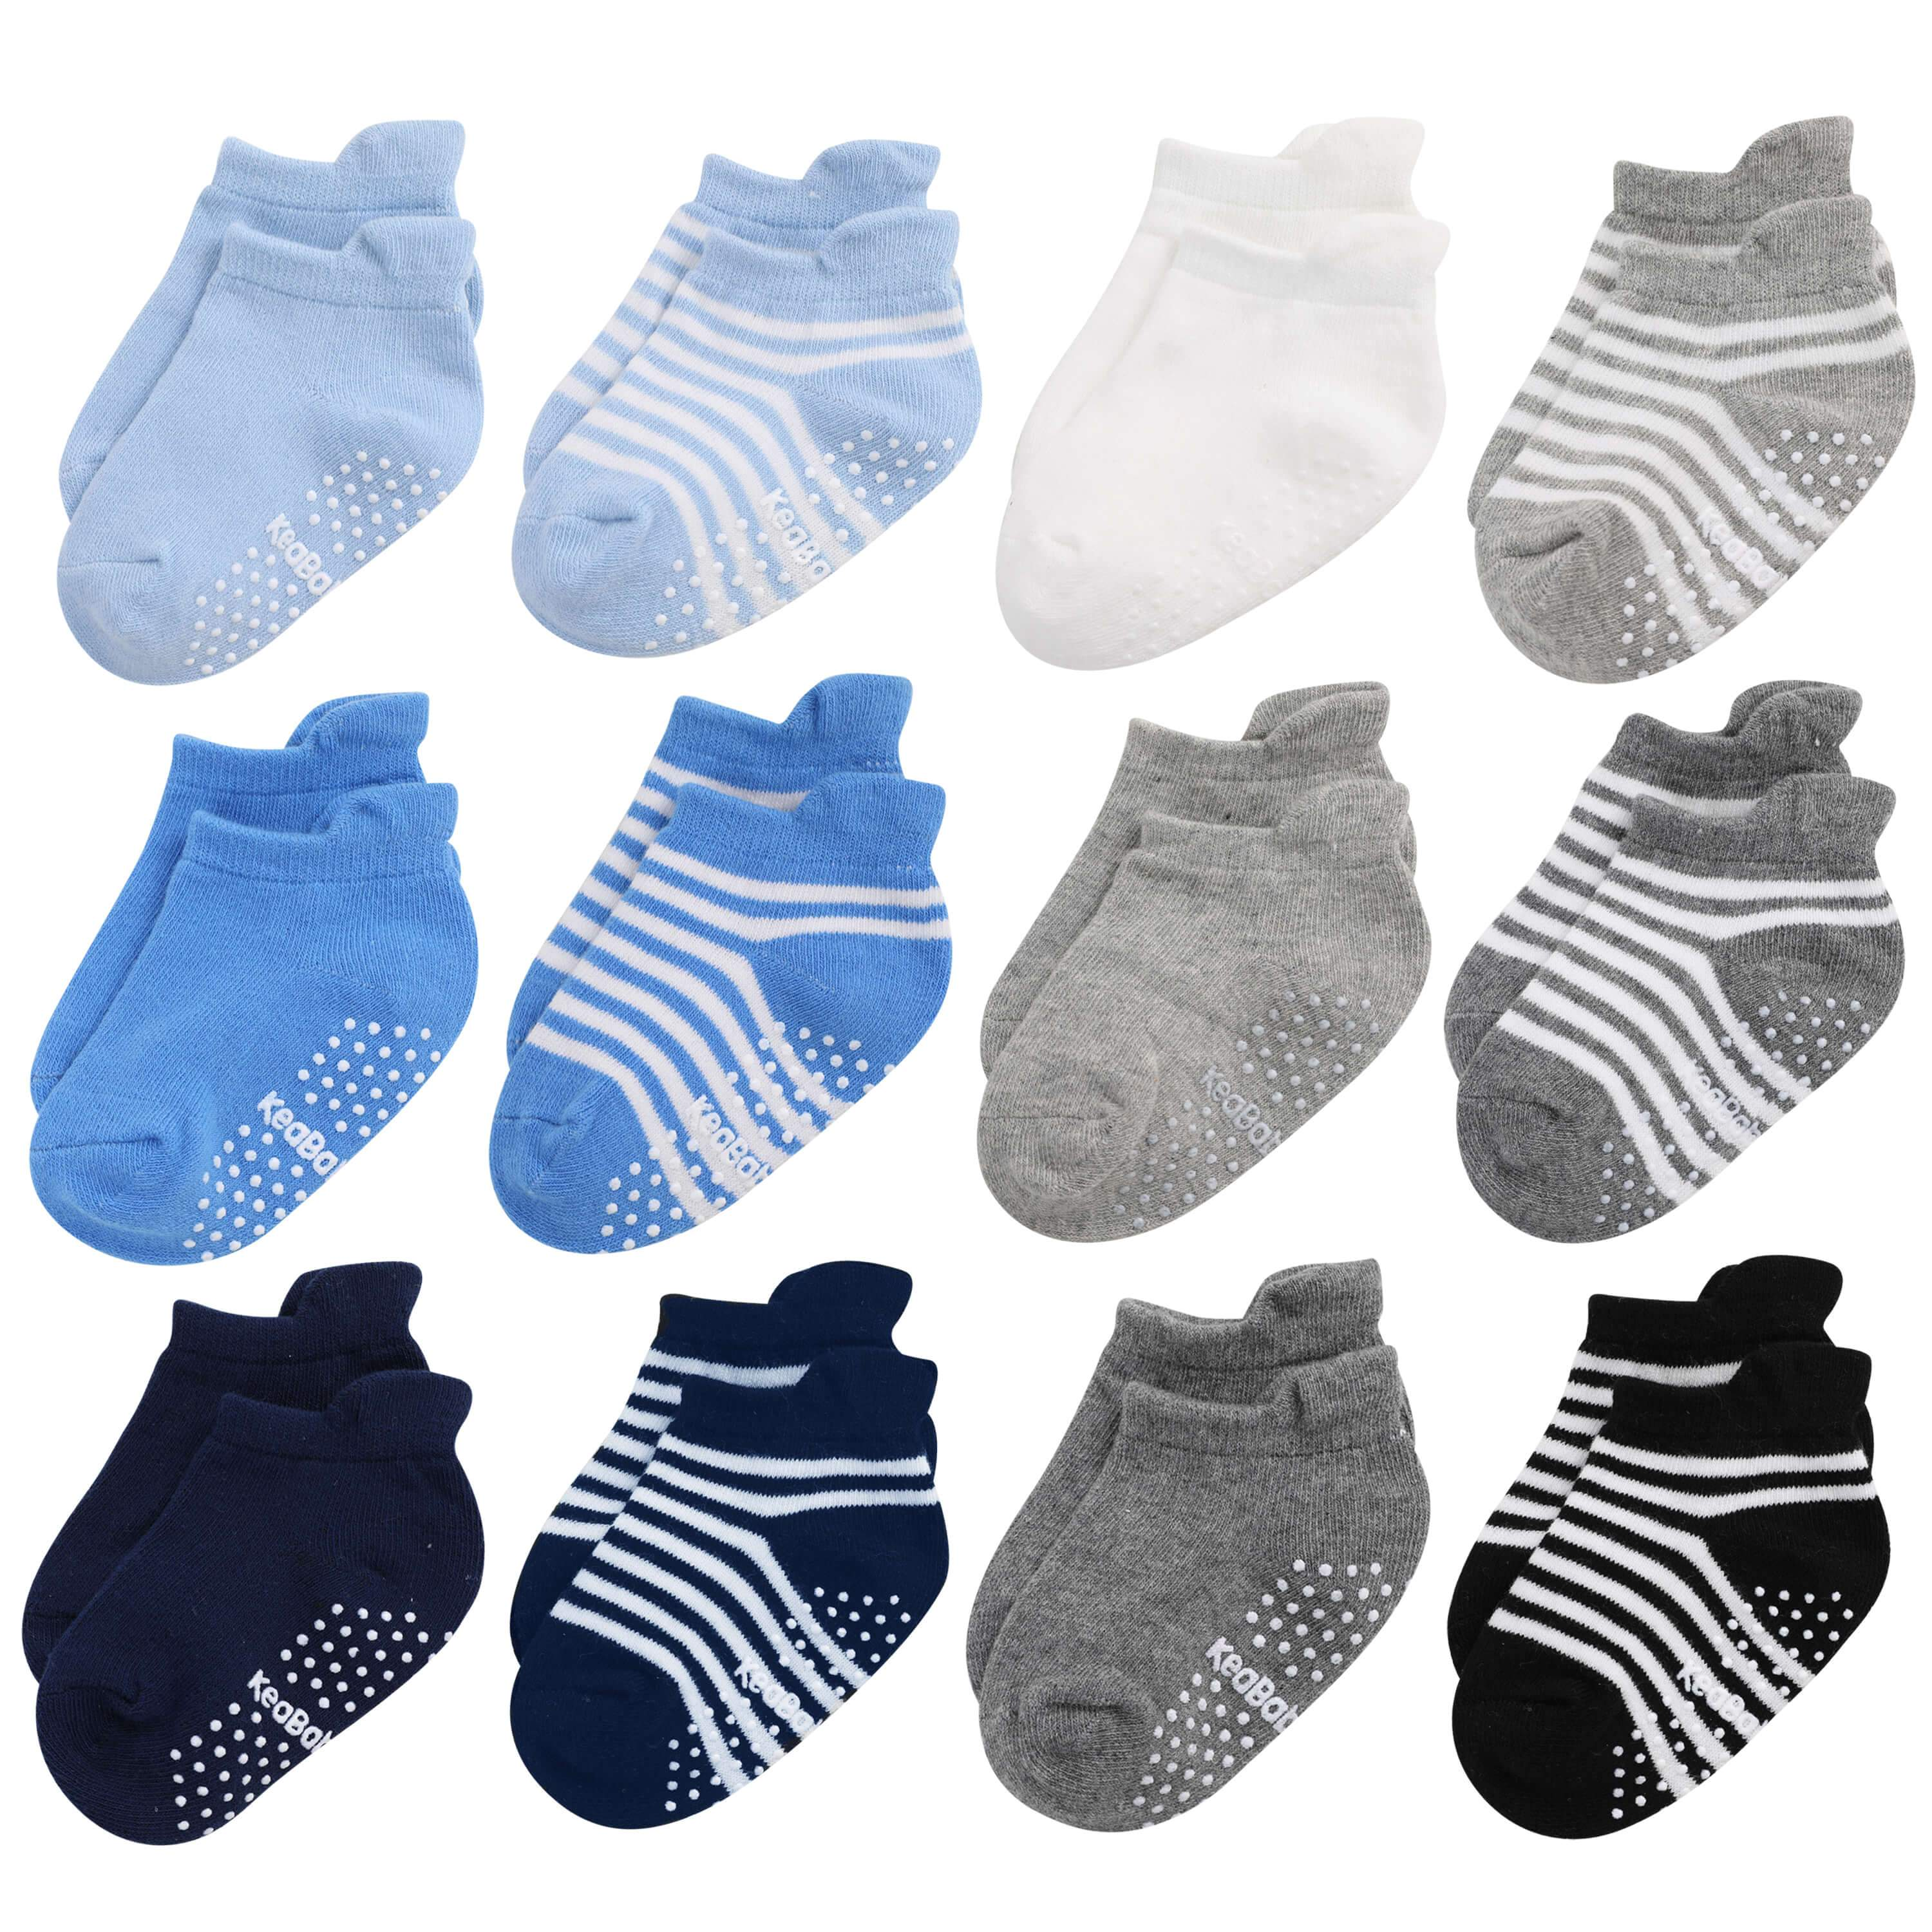 Dicry Non Slip Baby Socks with Grips Toddler Girls Boys Anti Skid Ankle Socks Infant Kids 6//12 Pairs